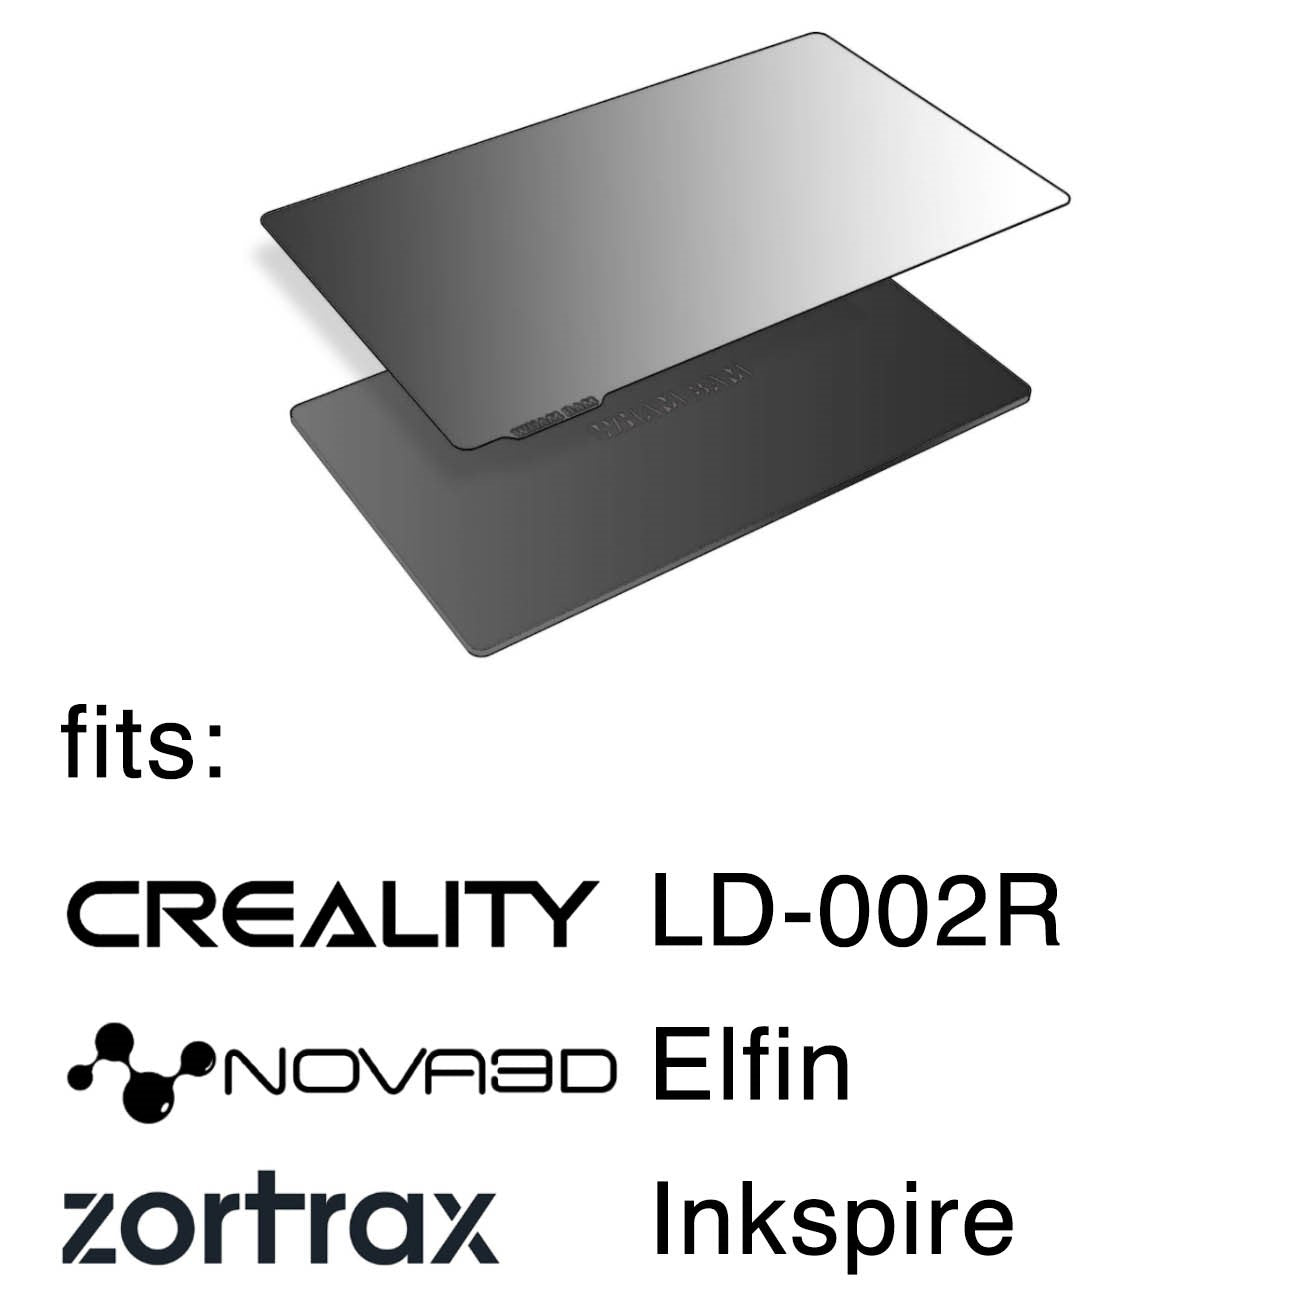 Creality Flexible Steel Plate and Magnet Sticker Compatible with LD-002R Resin 3D Printer 138 x 78 x 0.4 mm 2 Sets